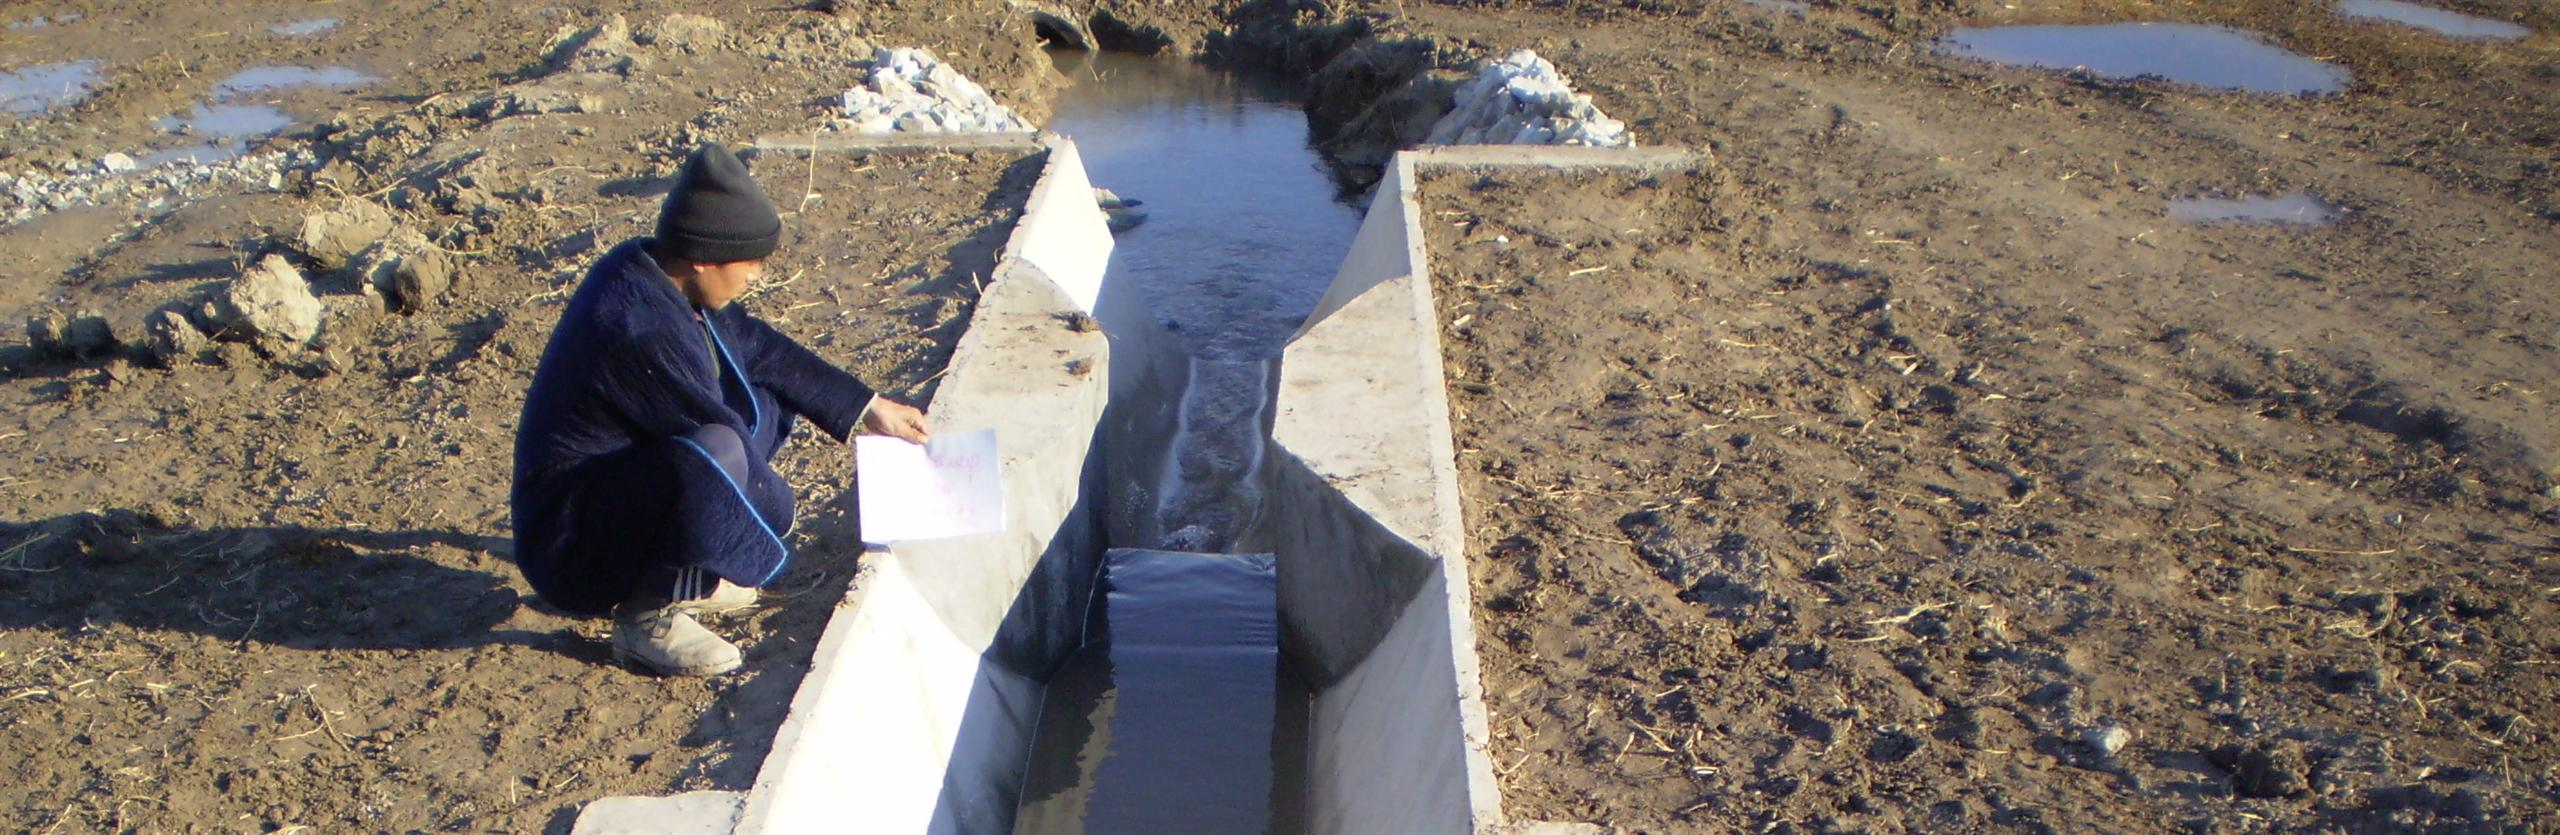 Improved water management will reduce flows diverted from the Syr Darya for irrigation